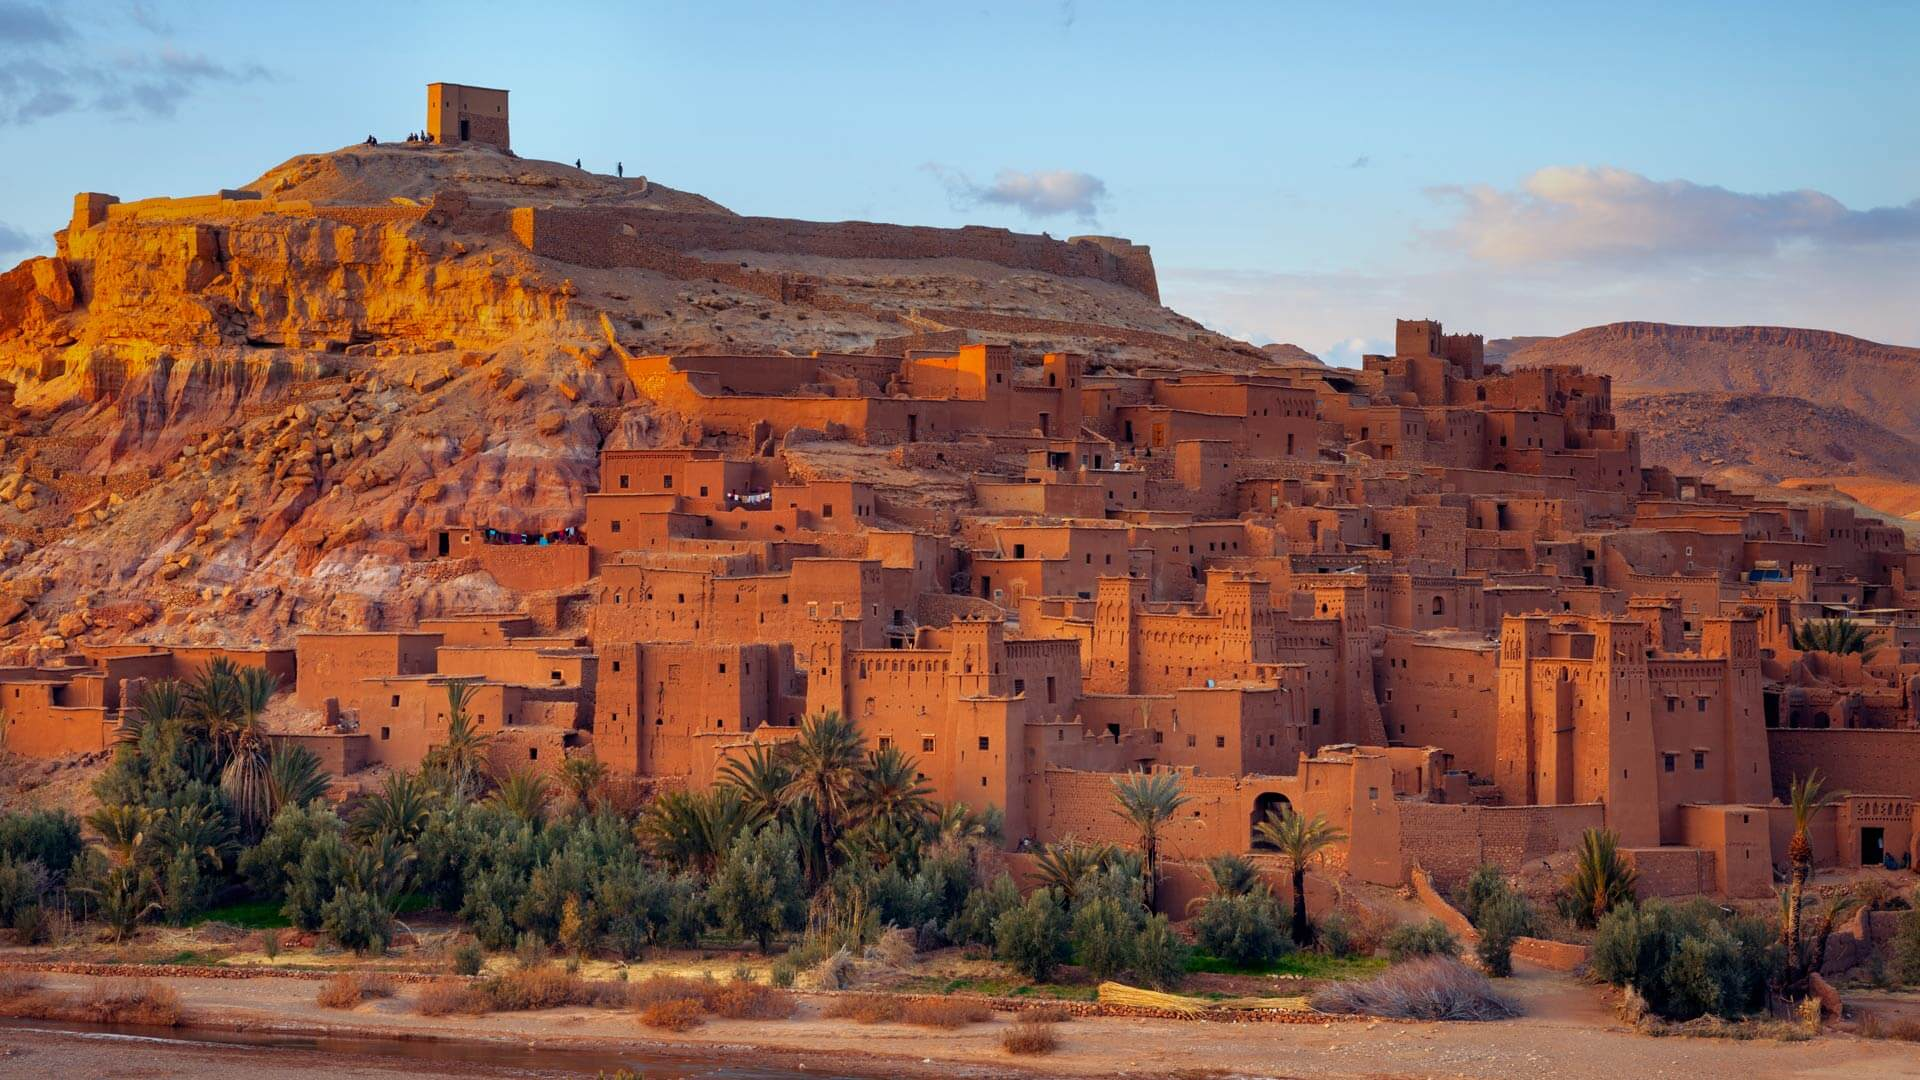 Morocco as a tourist destination